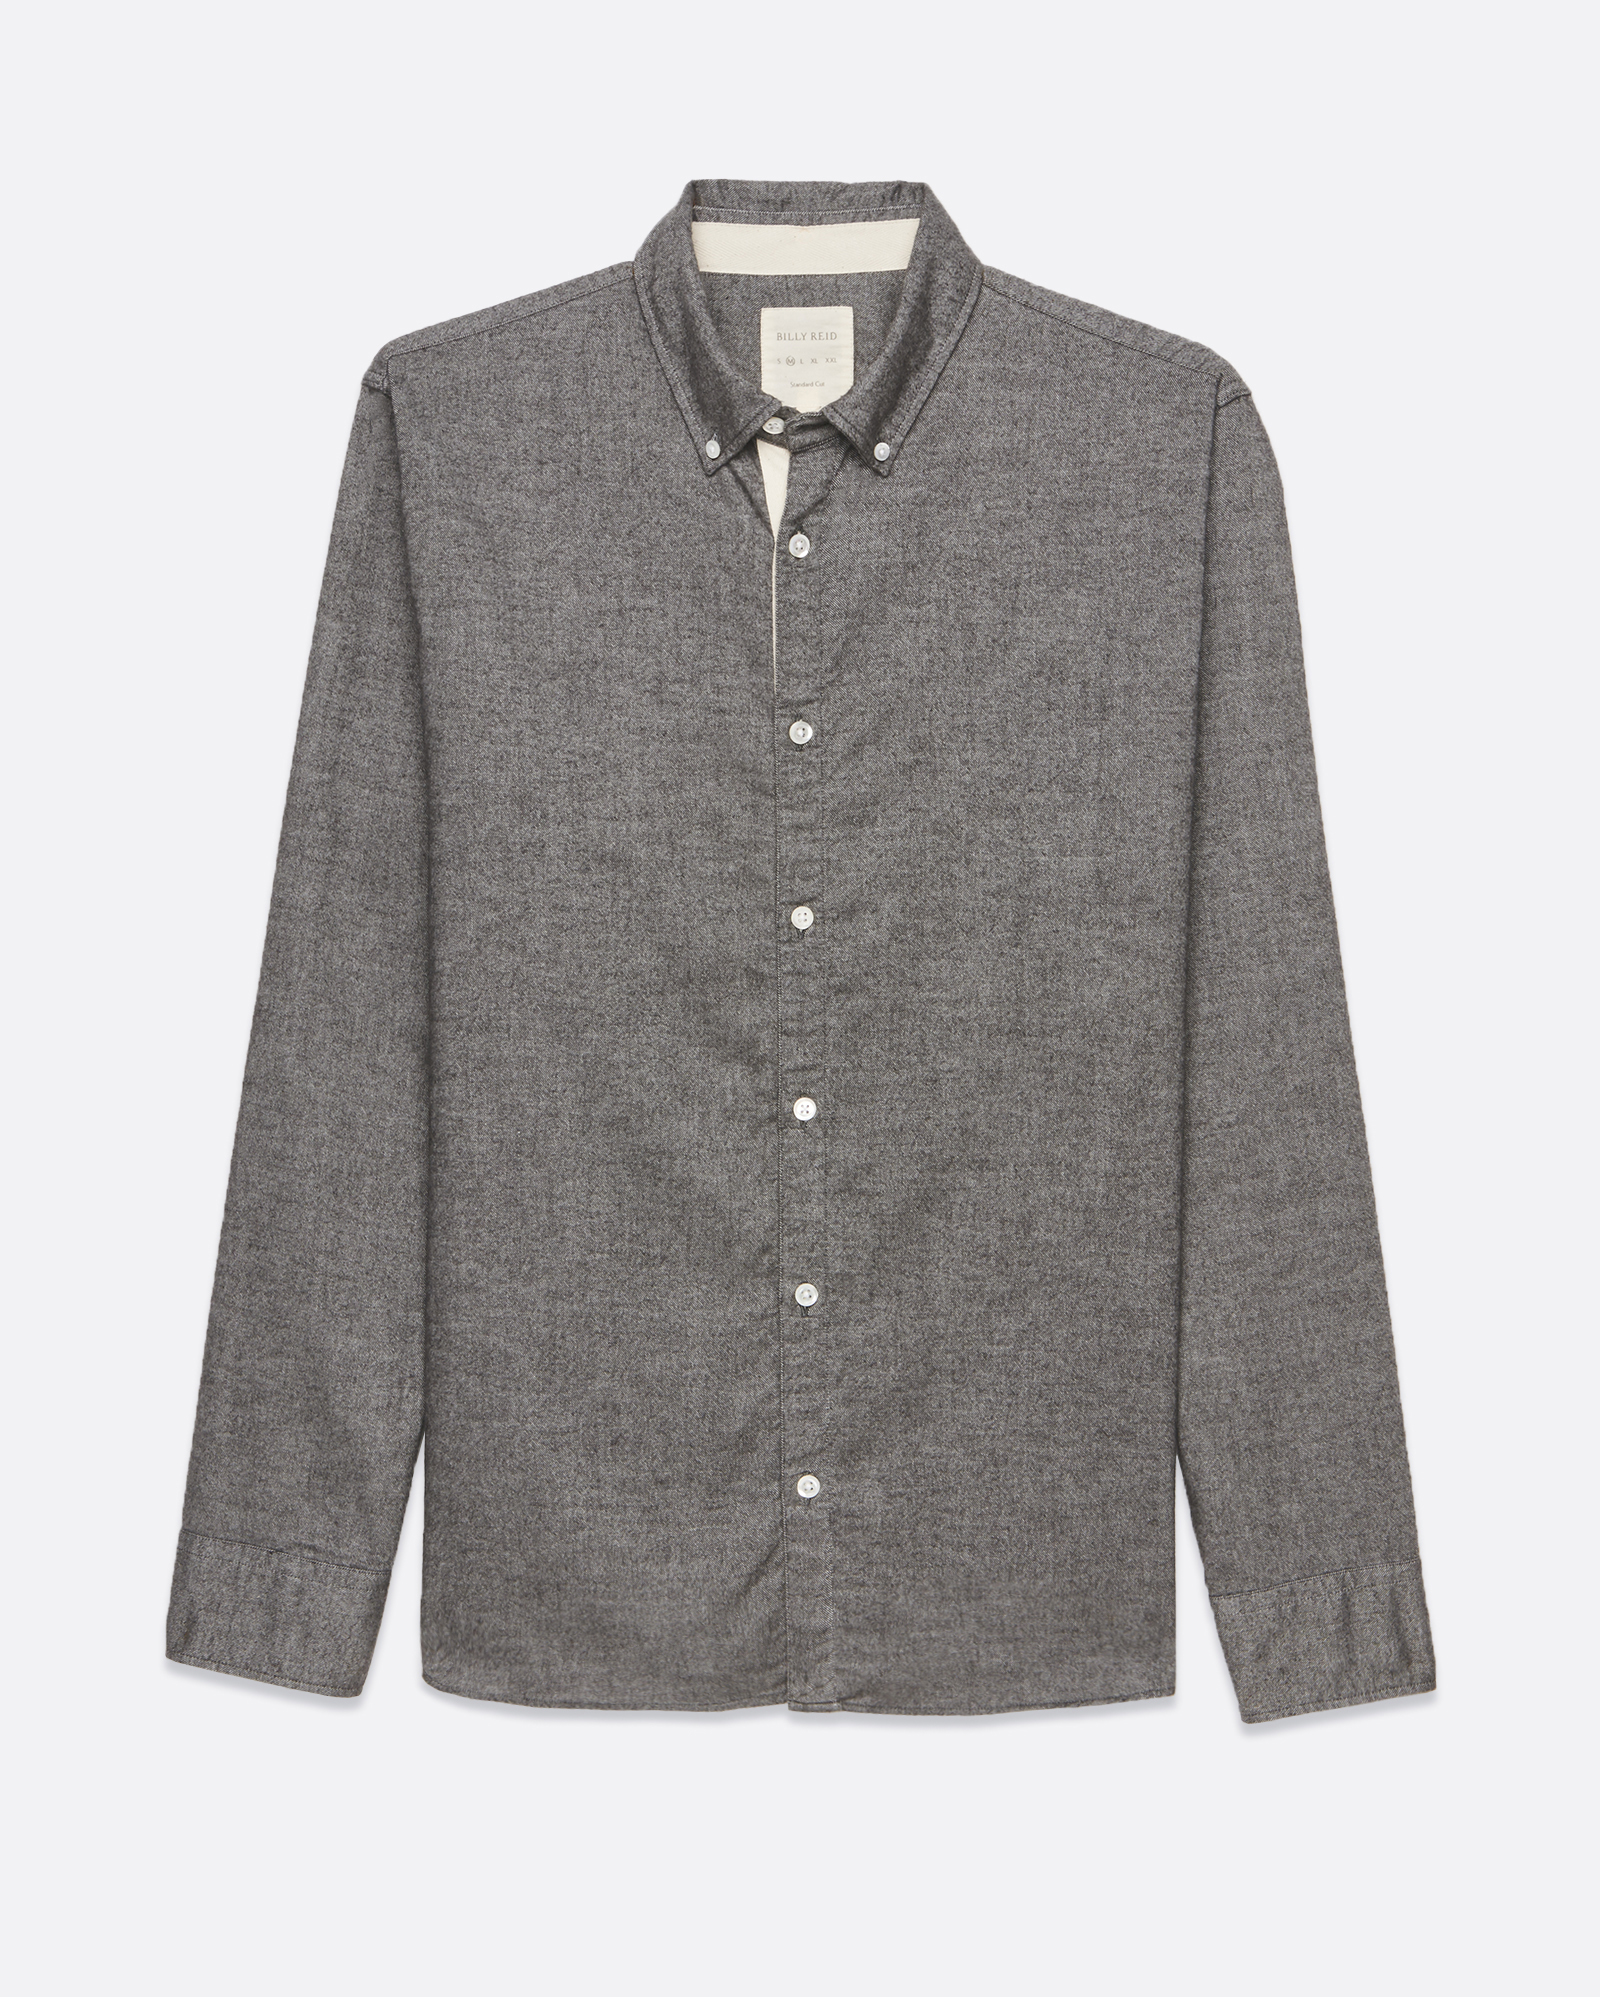 Lyst Billy Reid Brushed Twill Shirt In Gray For Men